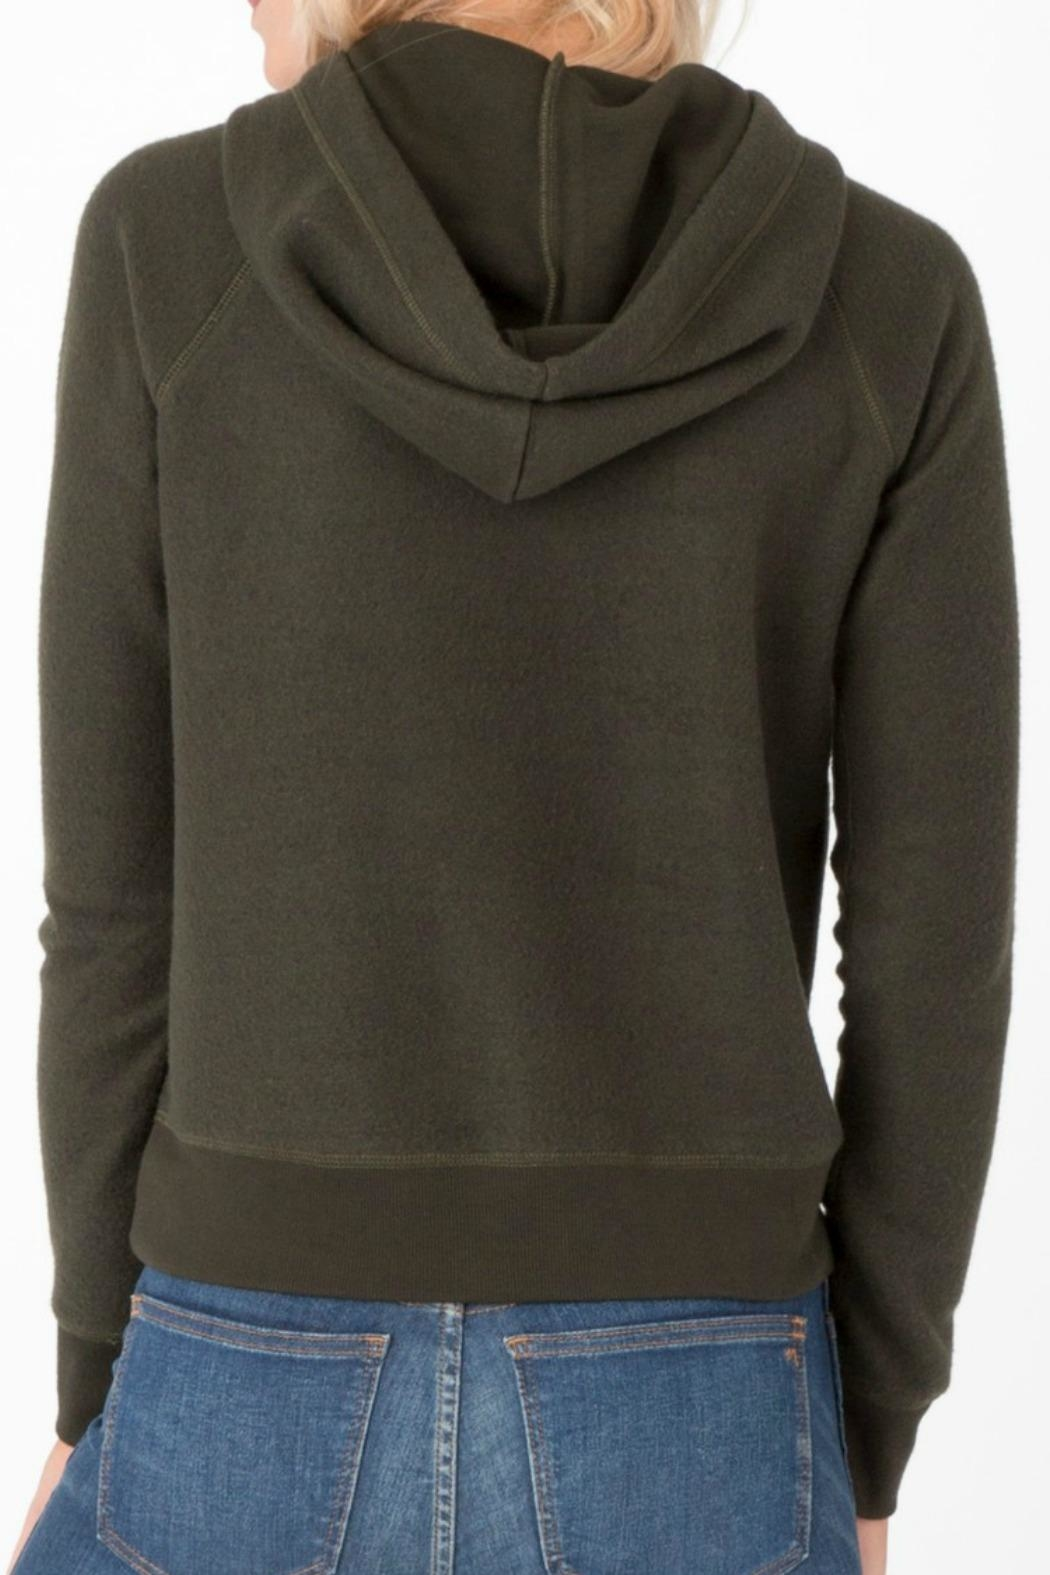 z supply Rosin Pullover Hoodie - Front Full Image